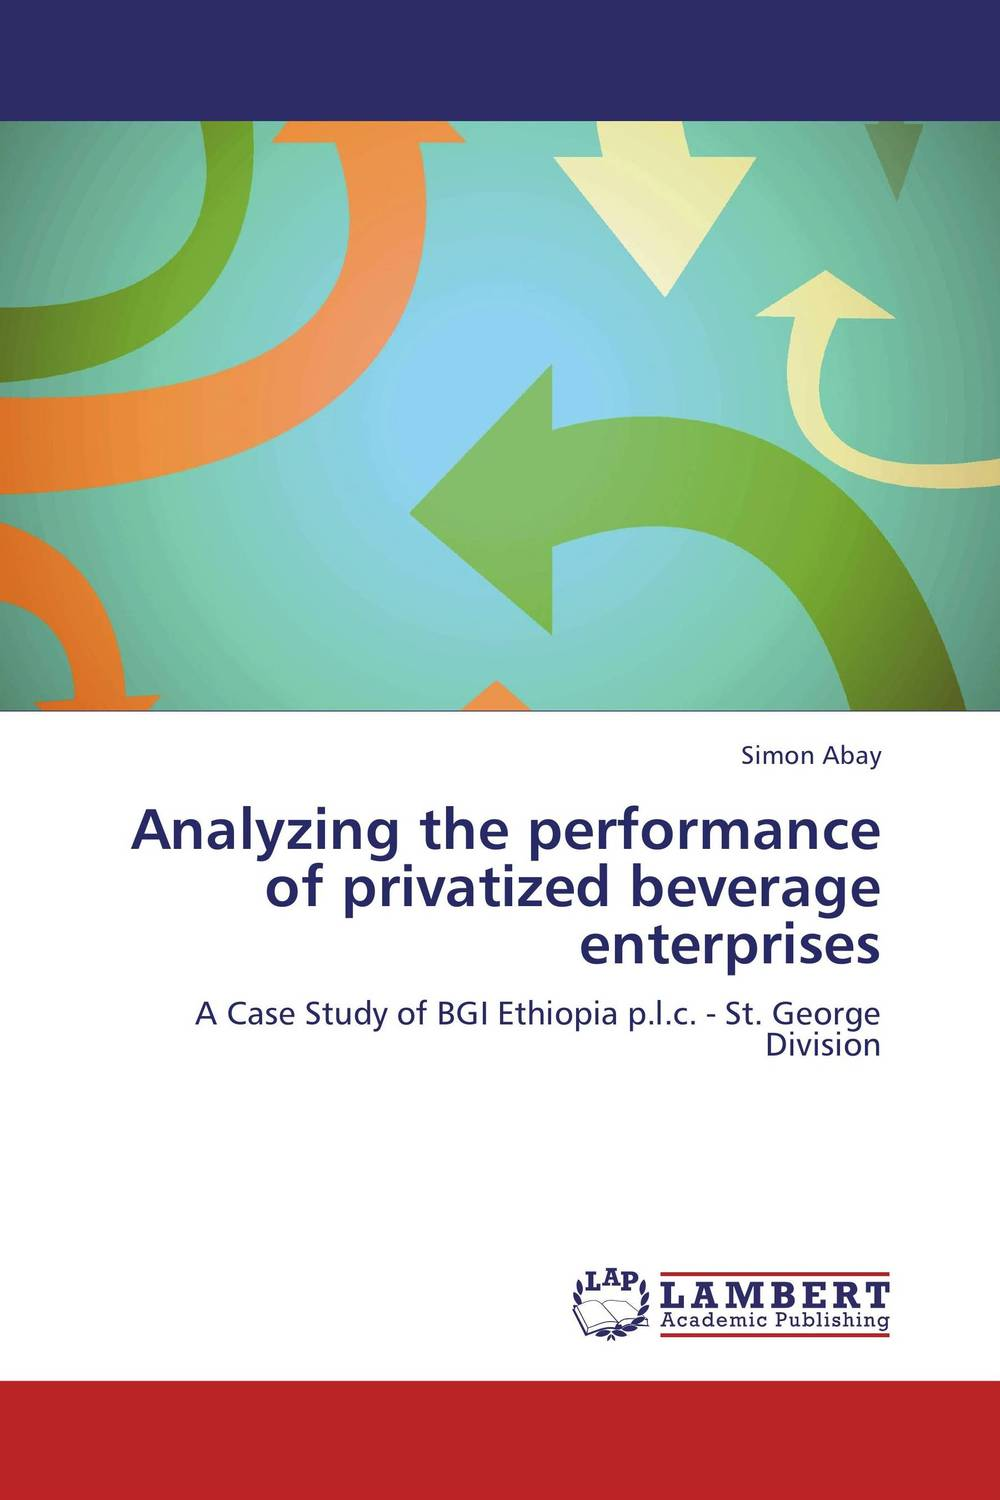 Analyzing the performance of privatized beverage enterprises chris wormell george and the dragon